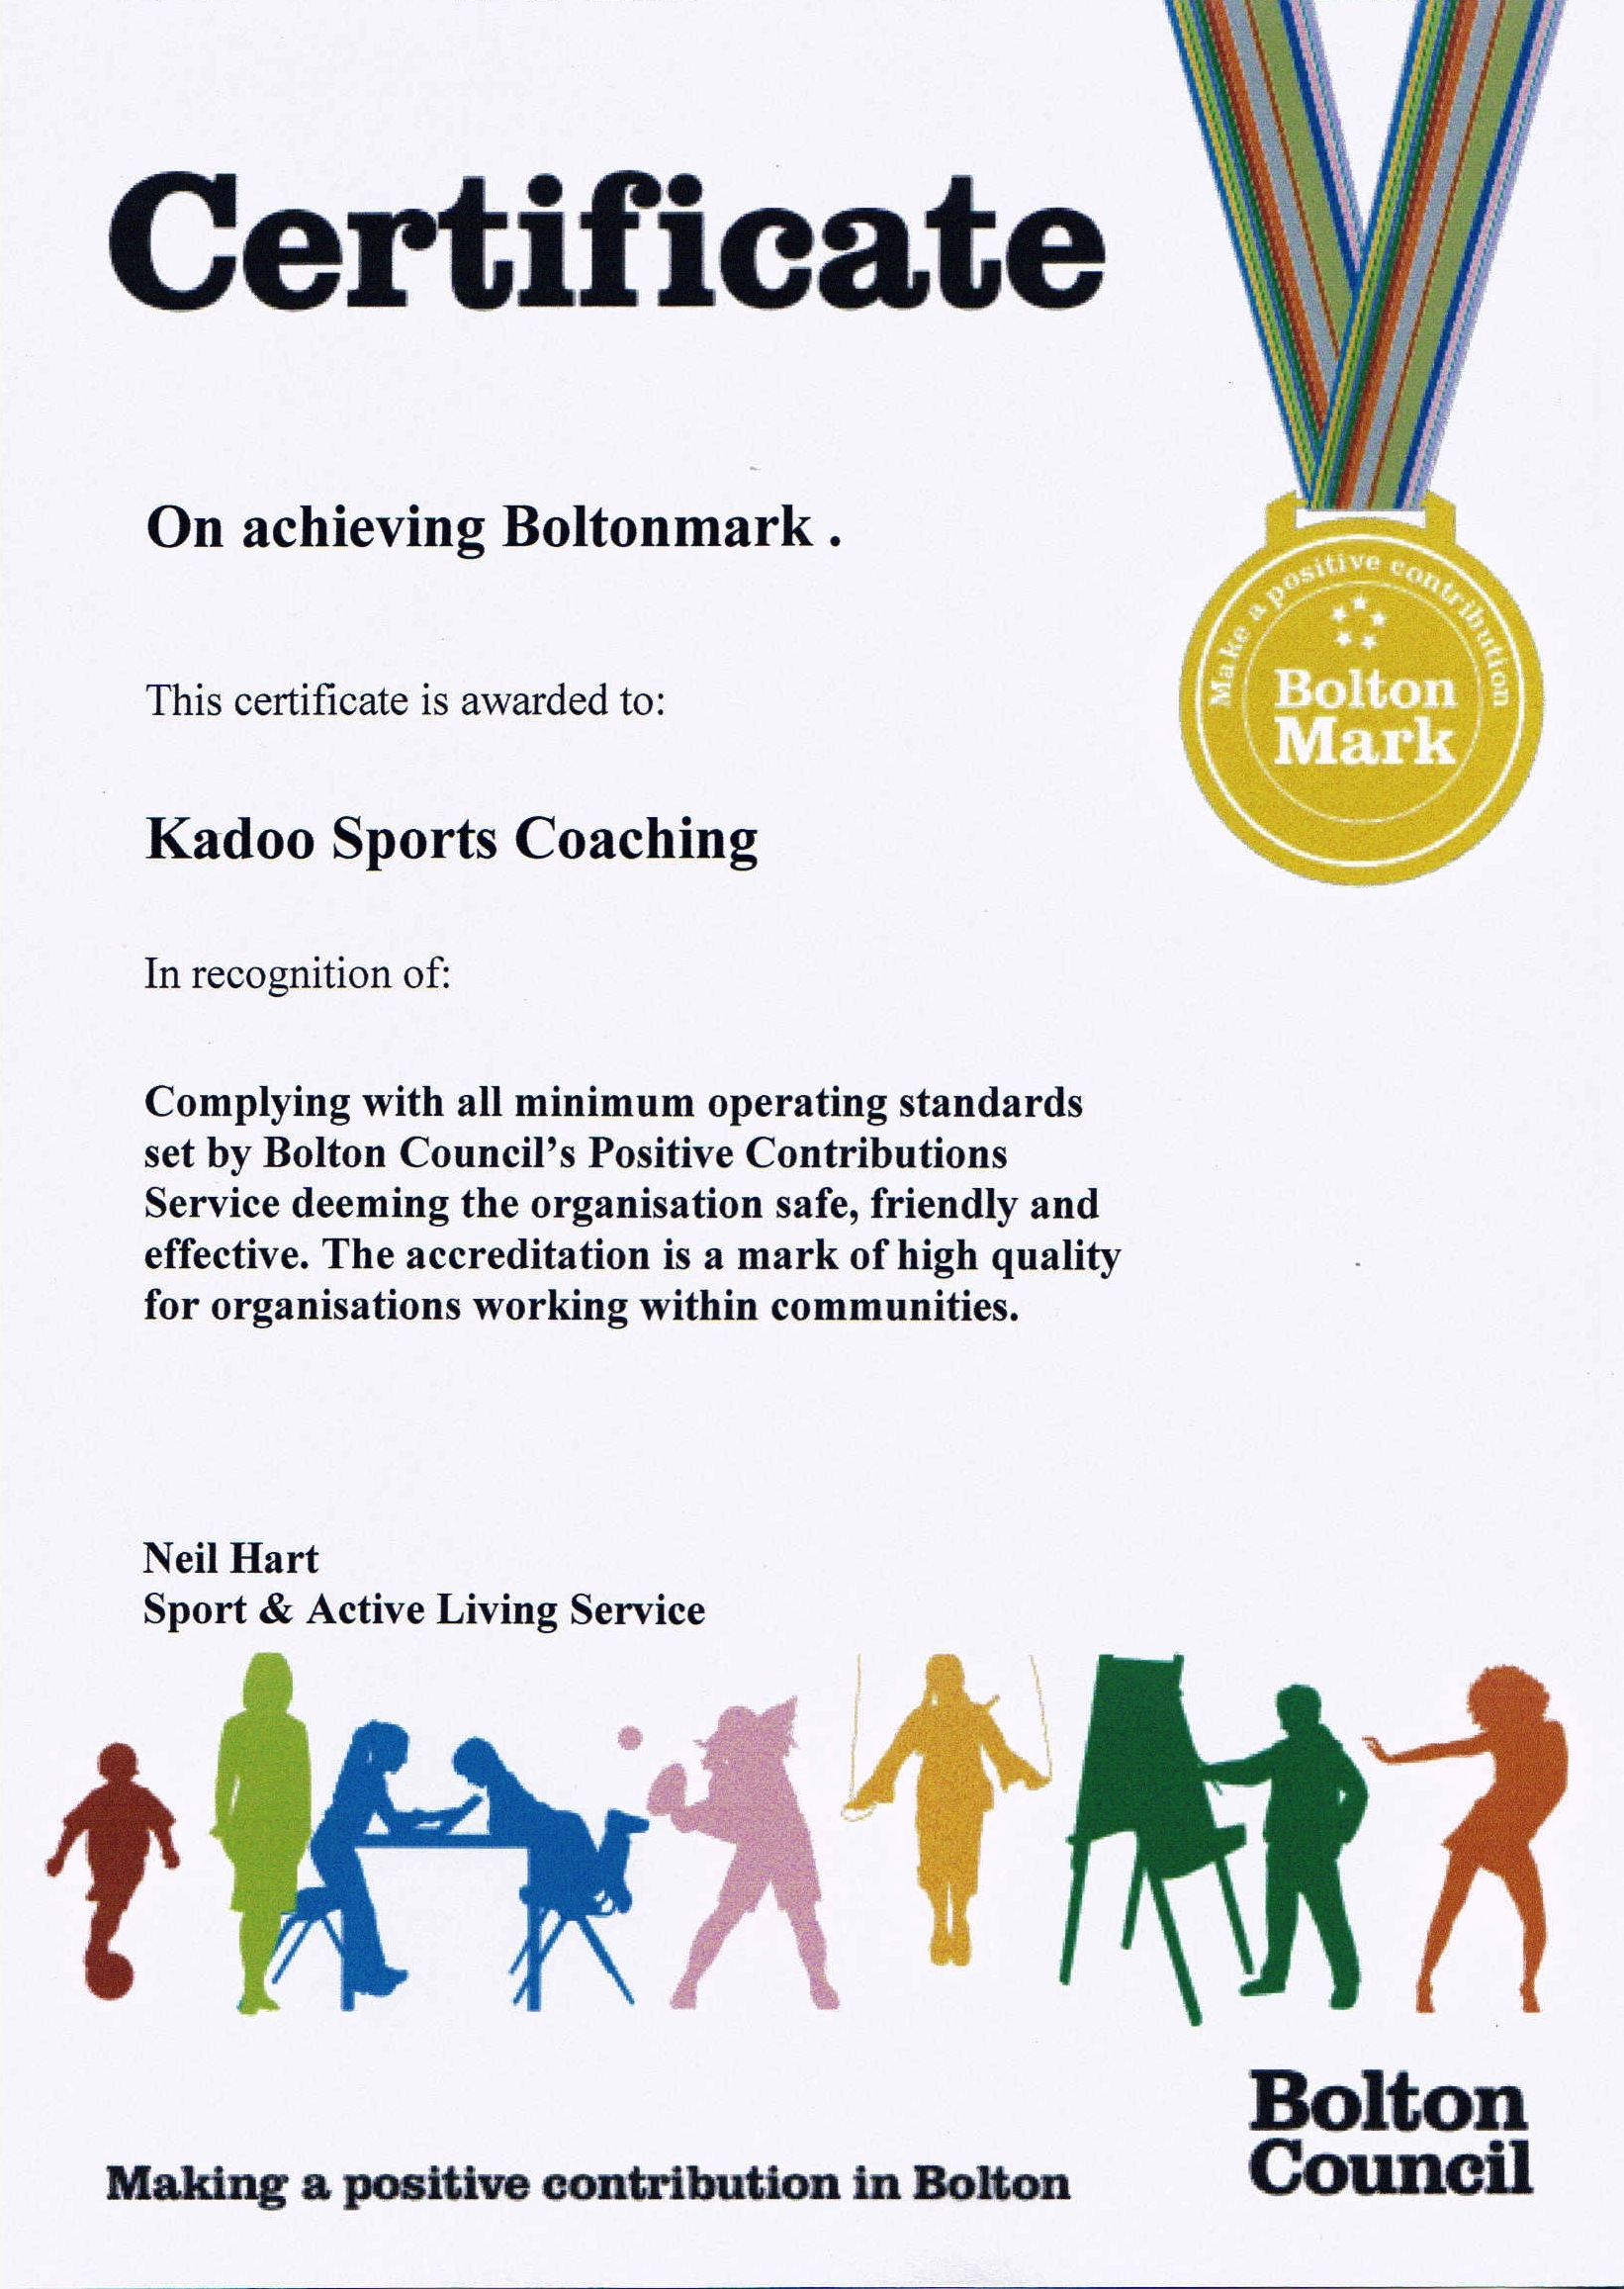 sports day certificate templates free - sport certificate templates boltonmark certificate i took